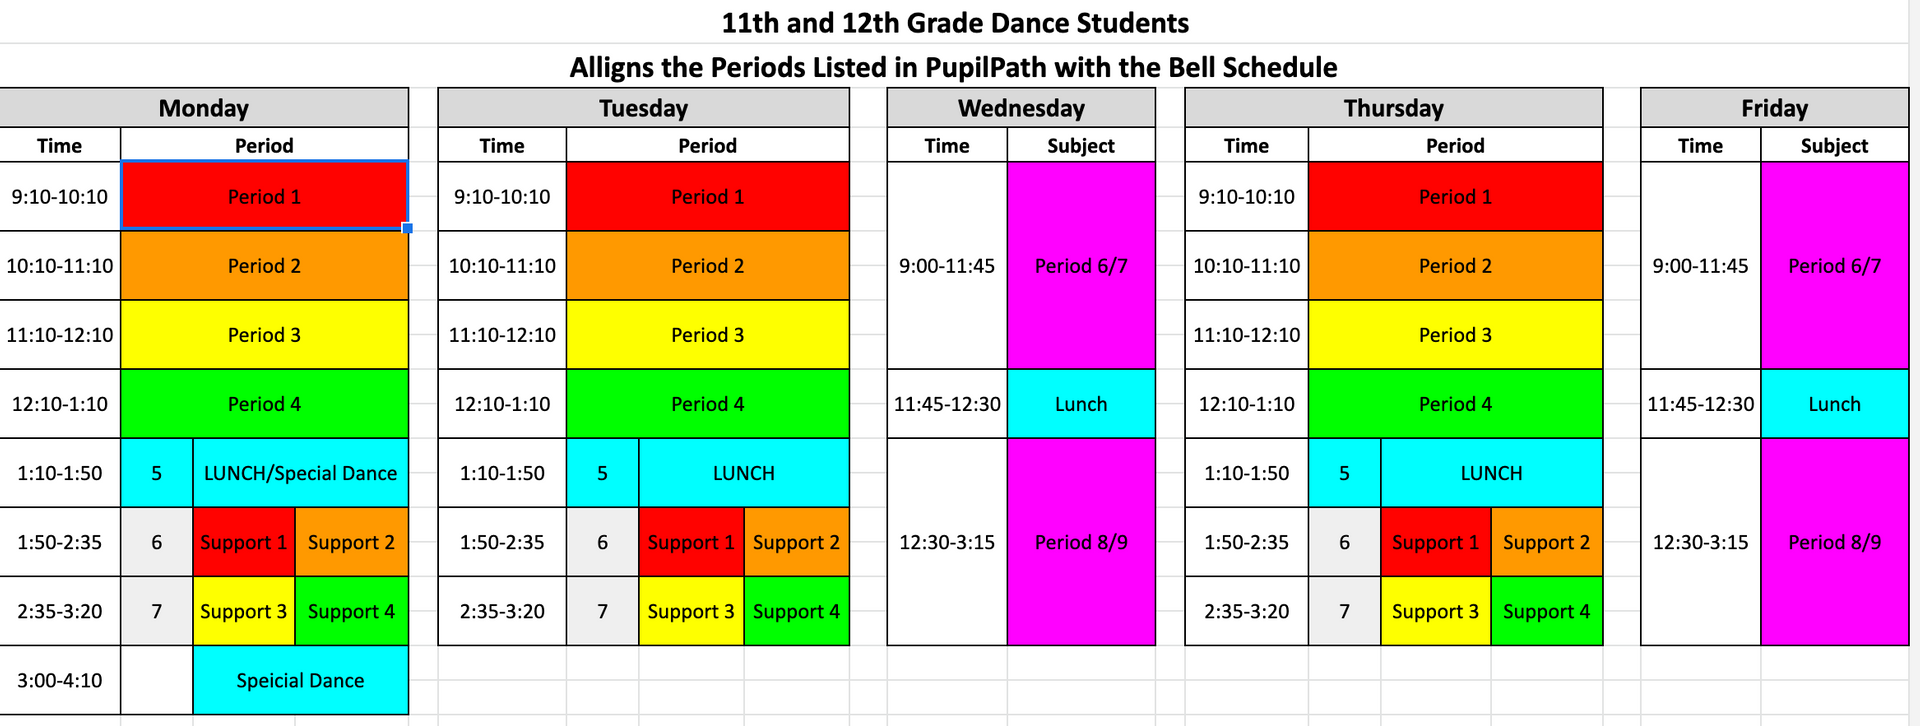 Dance Bell Schedules Grades 11 and 12